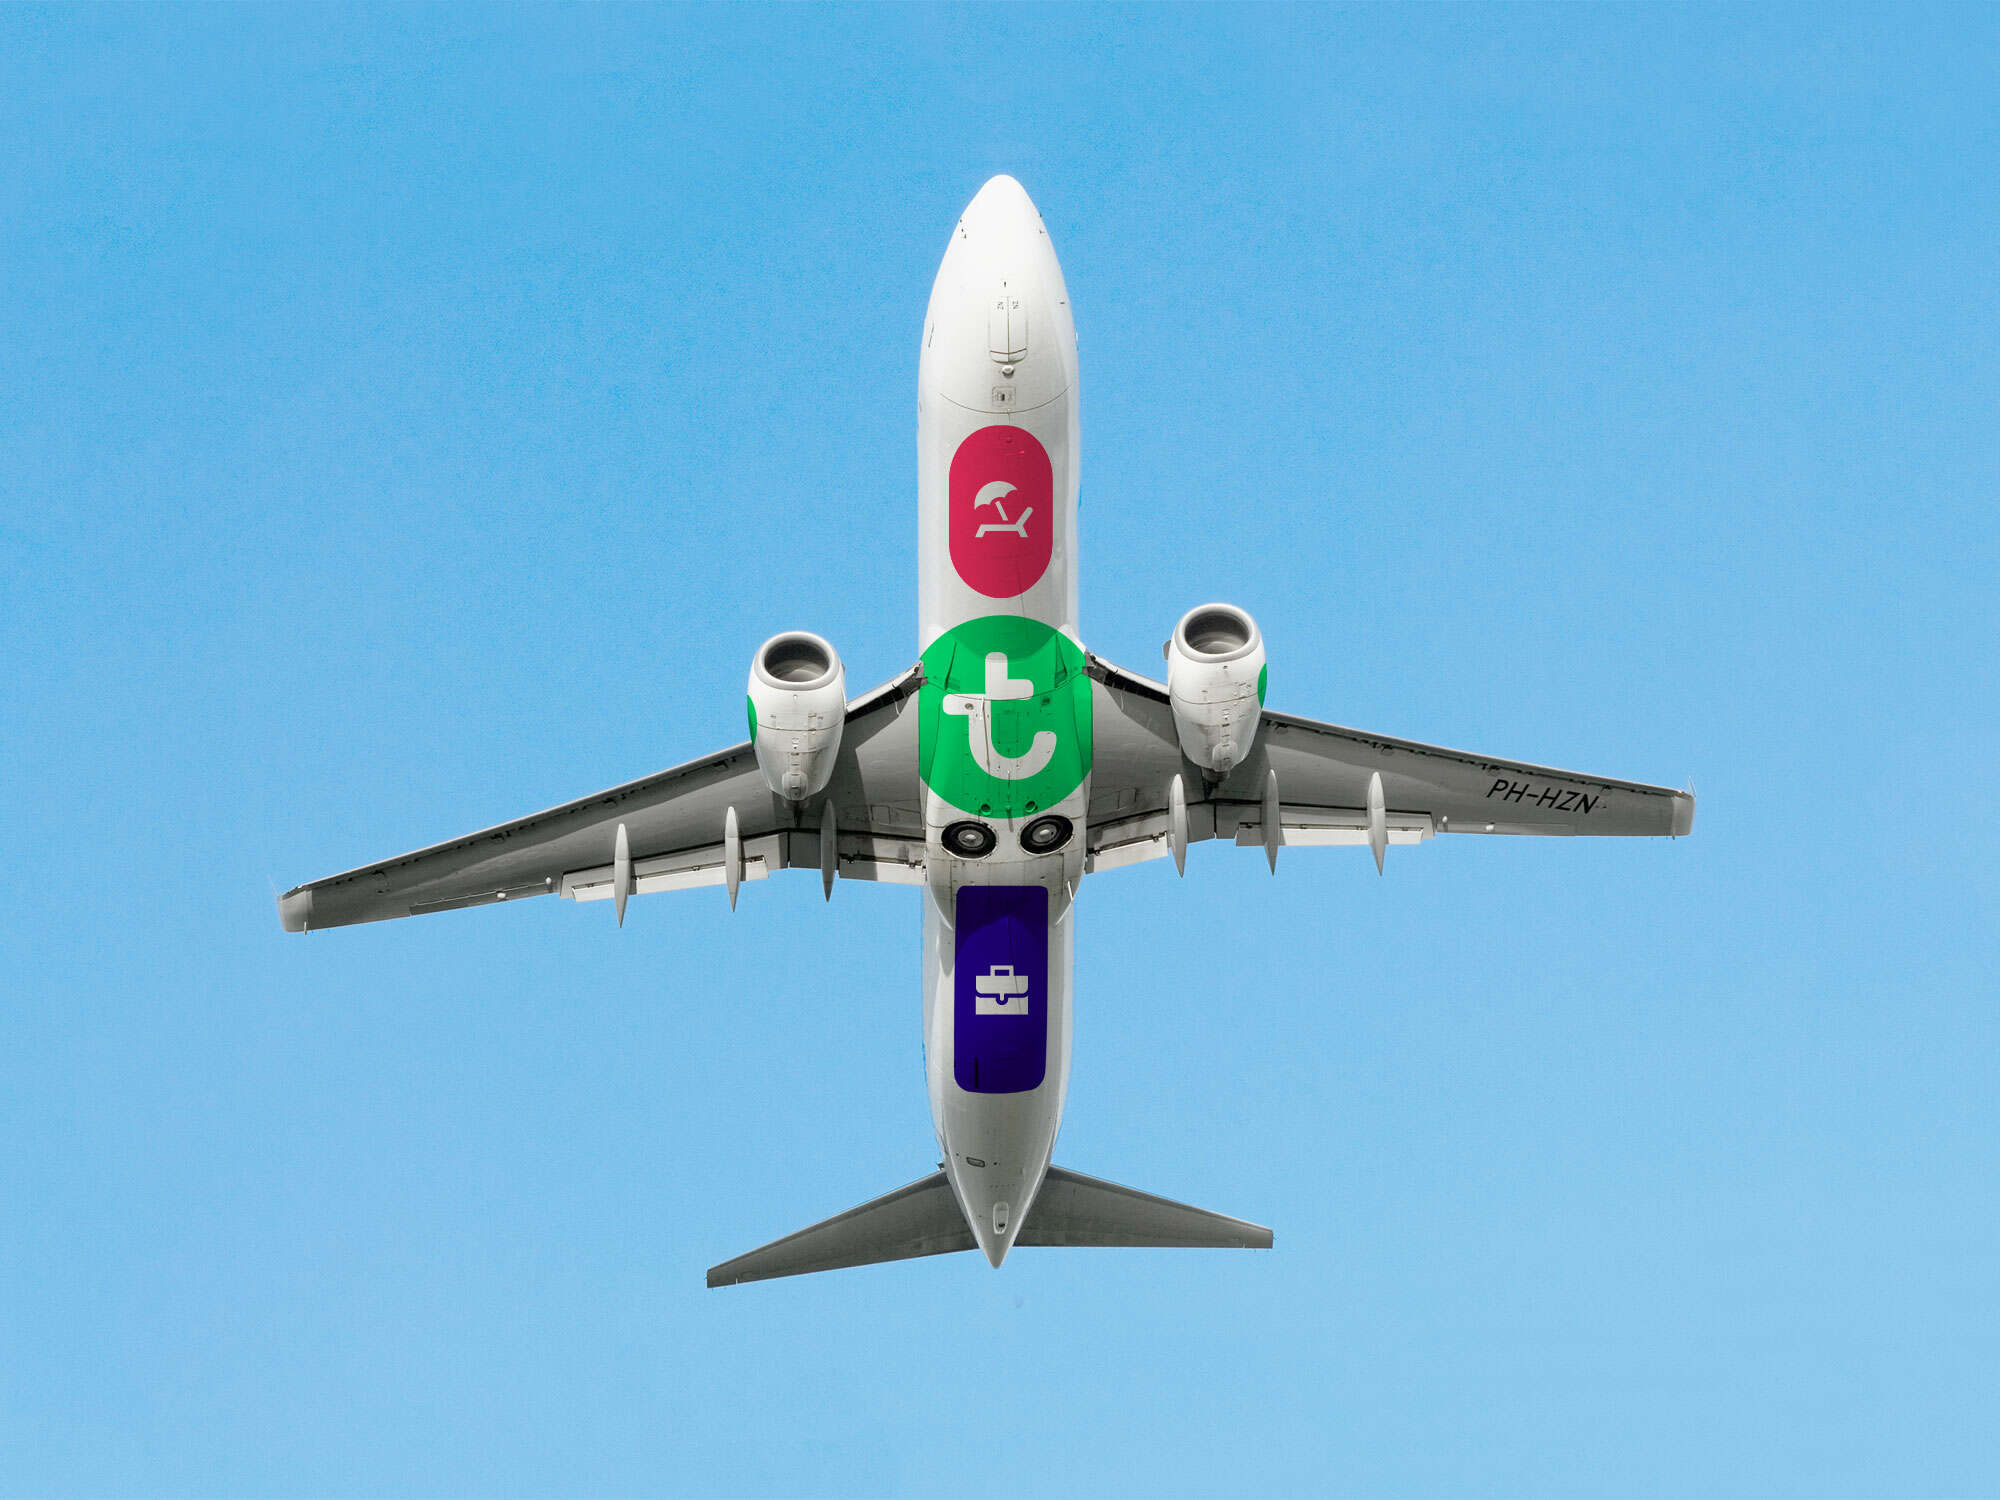 Transavia France proposera une vingtaine de destinations au départ de Montpellier (photo : Transavia France)